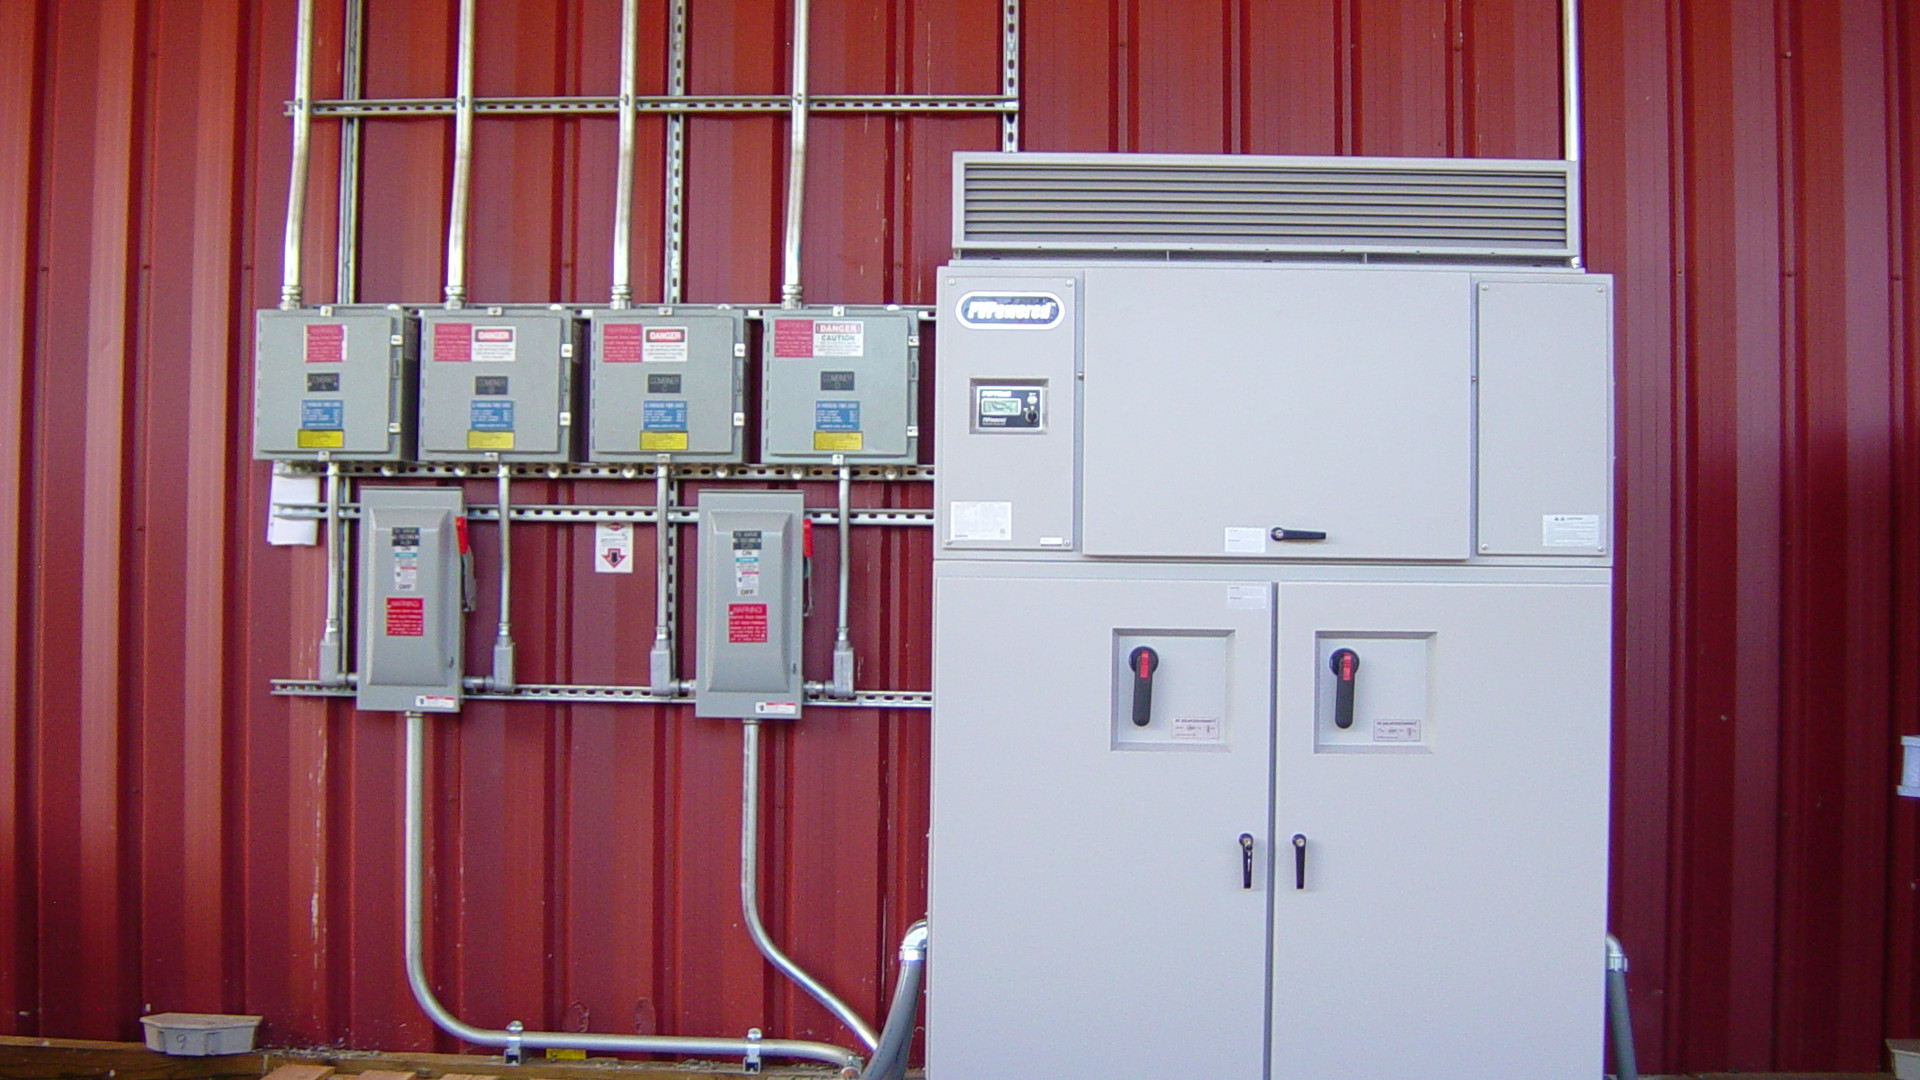 Inverter_fullwall2.JPG